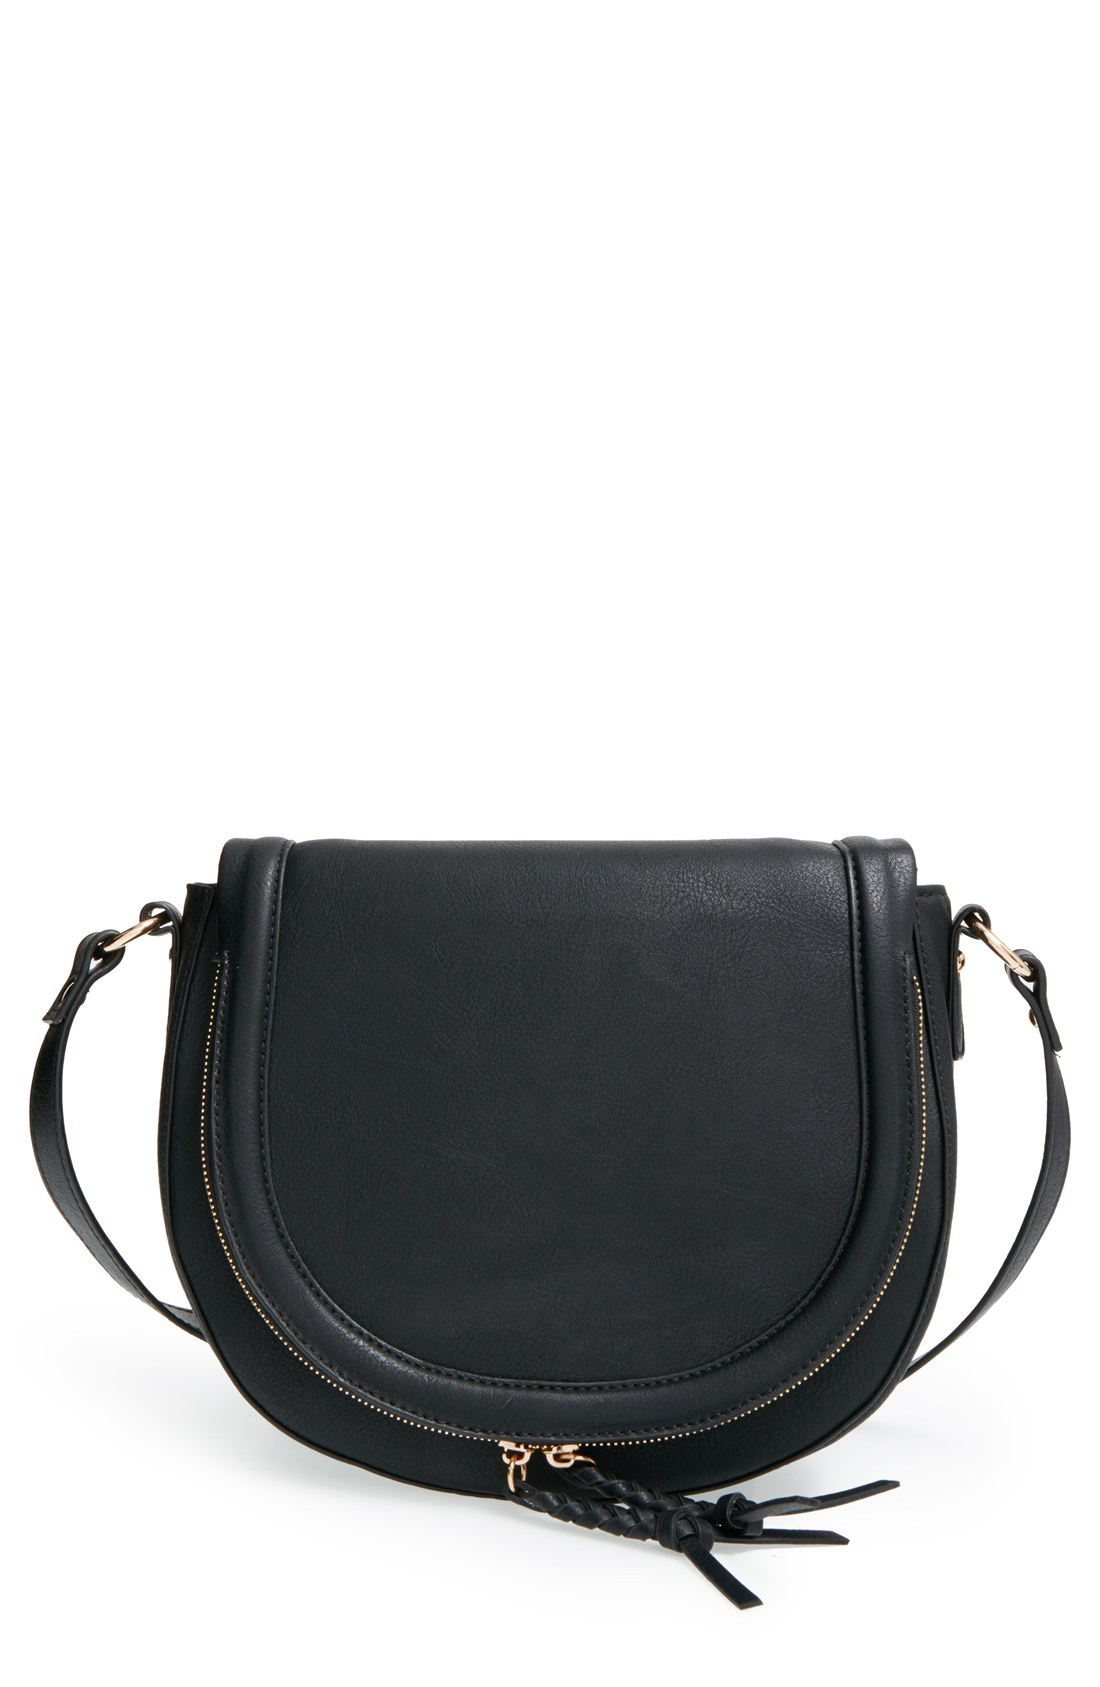 new photos best place select for original Sole Society 'Thalia' Faux Leather Crossbody Bag   Nordstrom